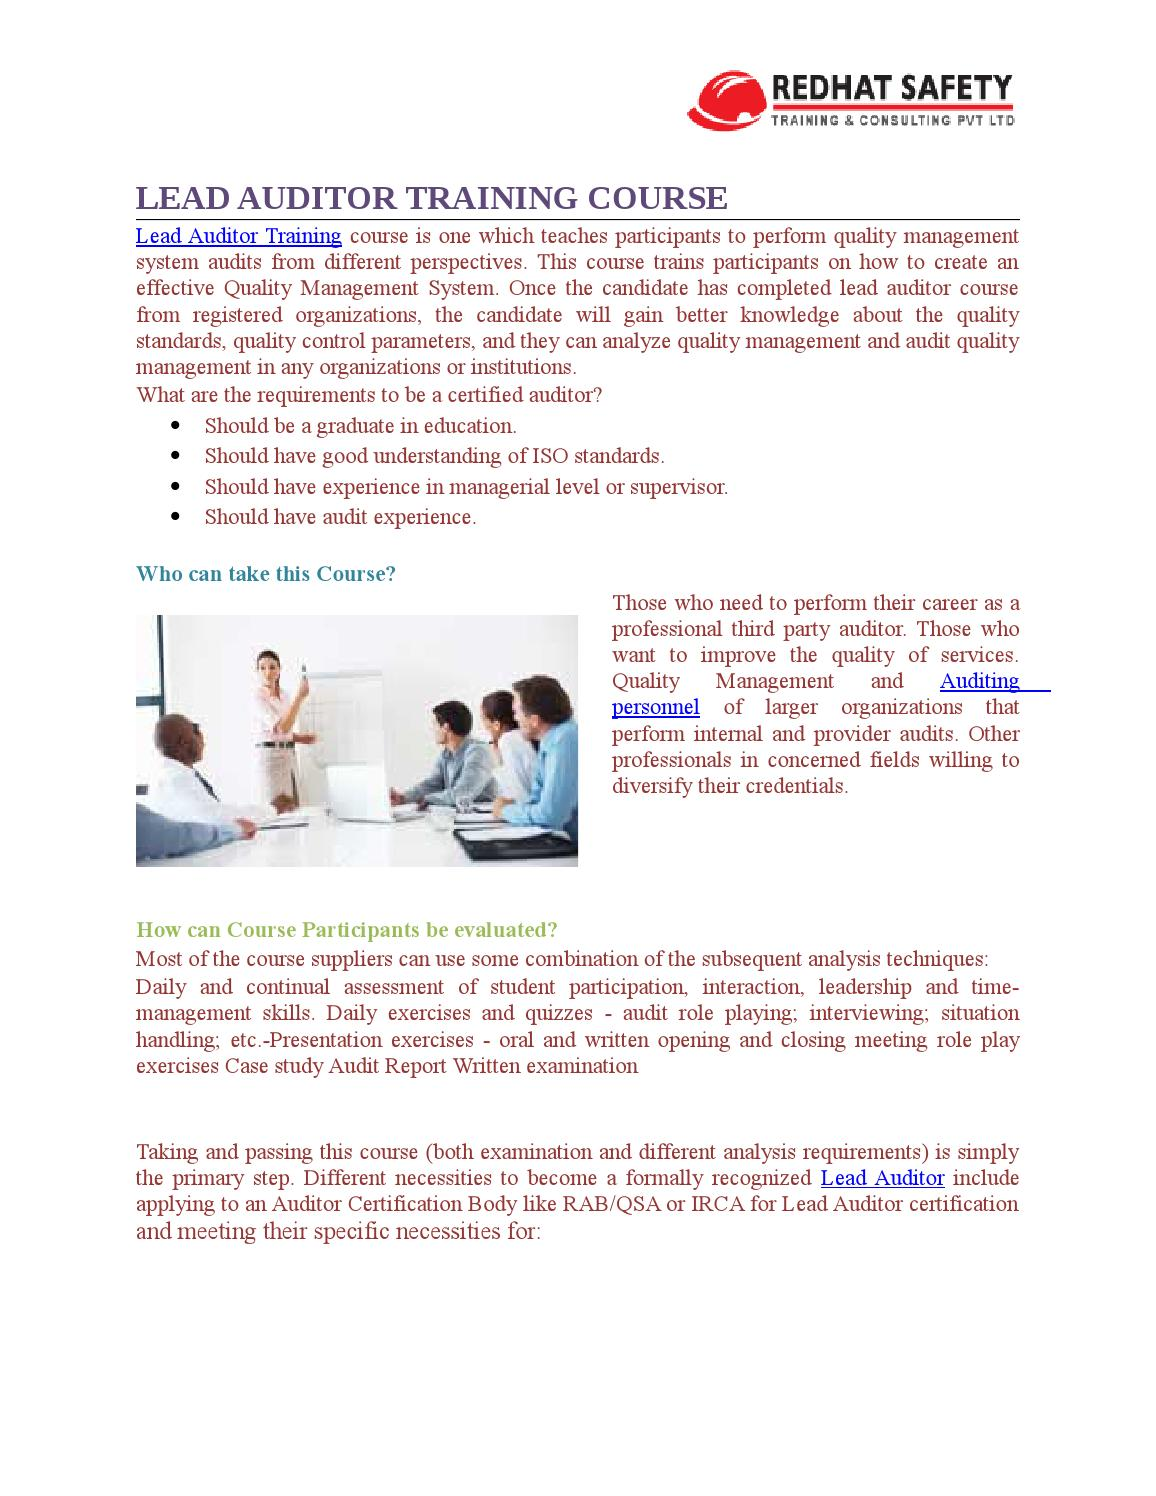 Lead auditor Training Course-What is it? by redhatsafety - issuu